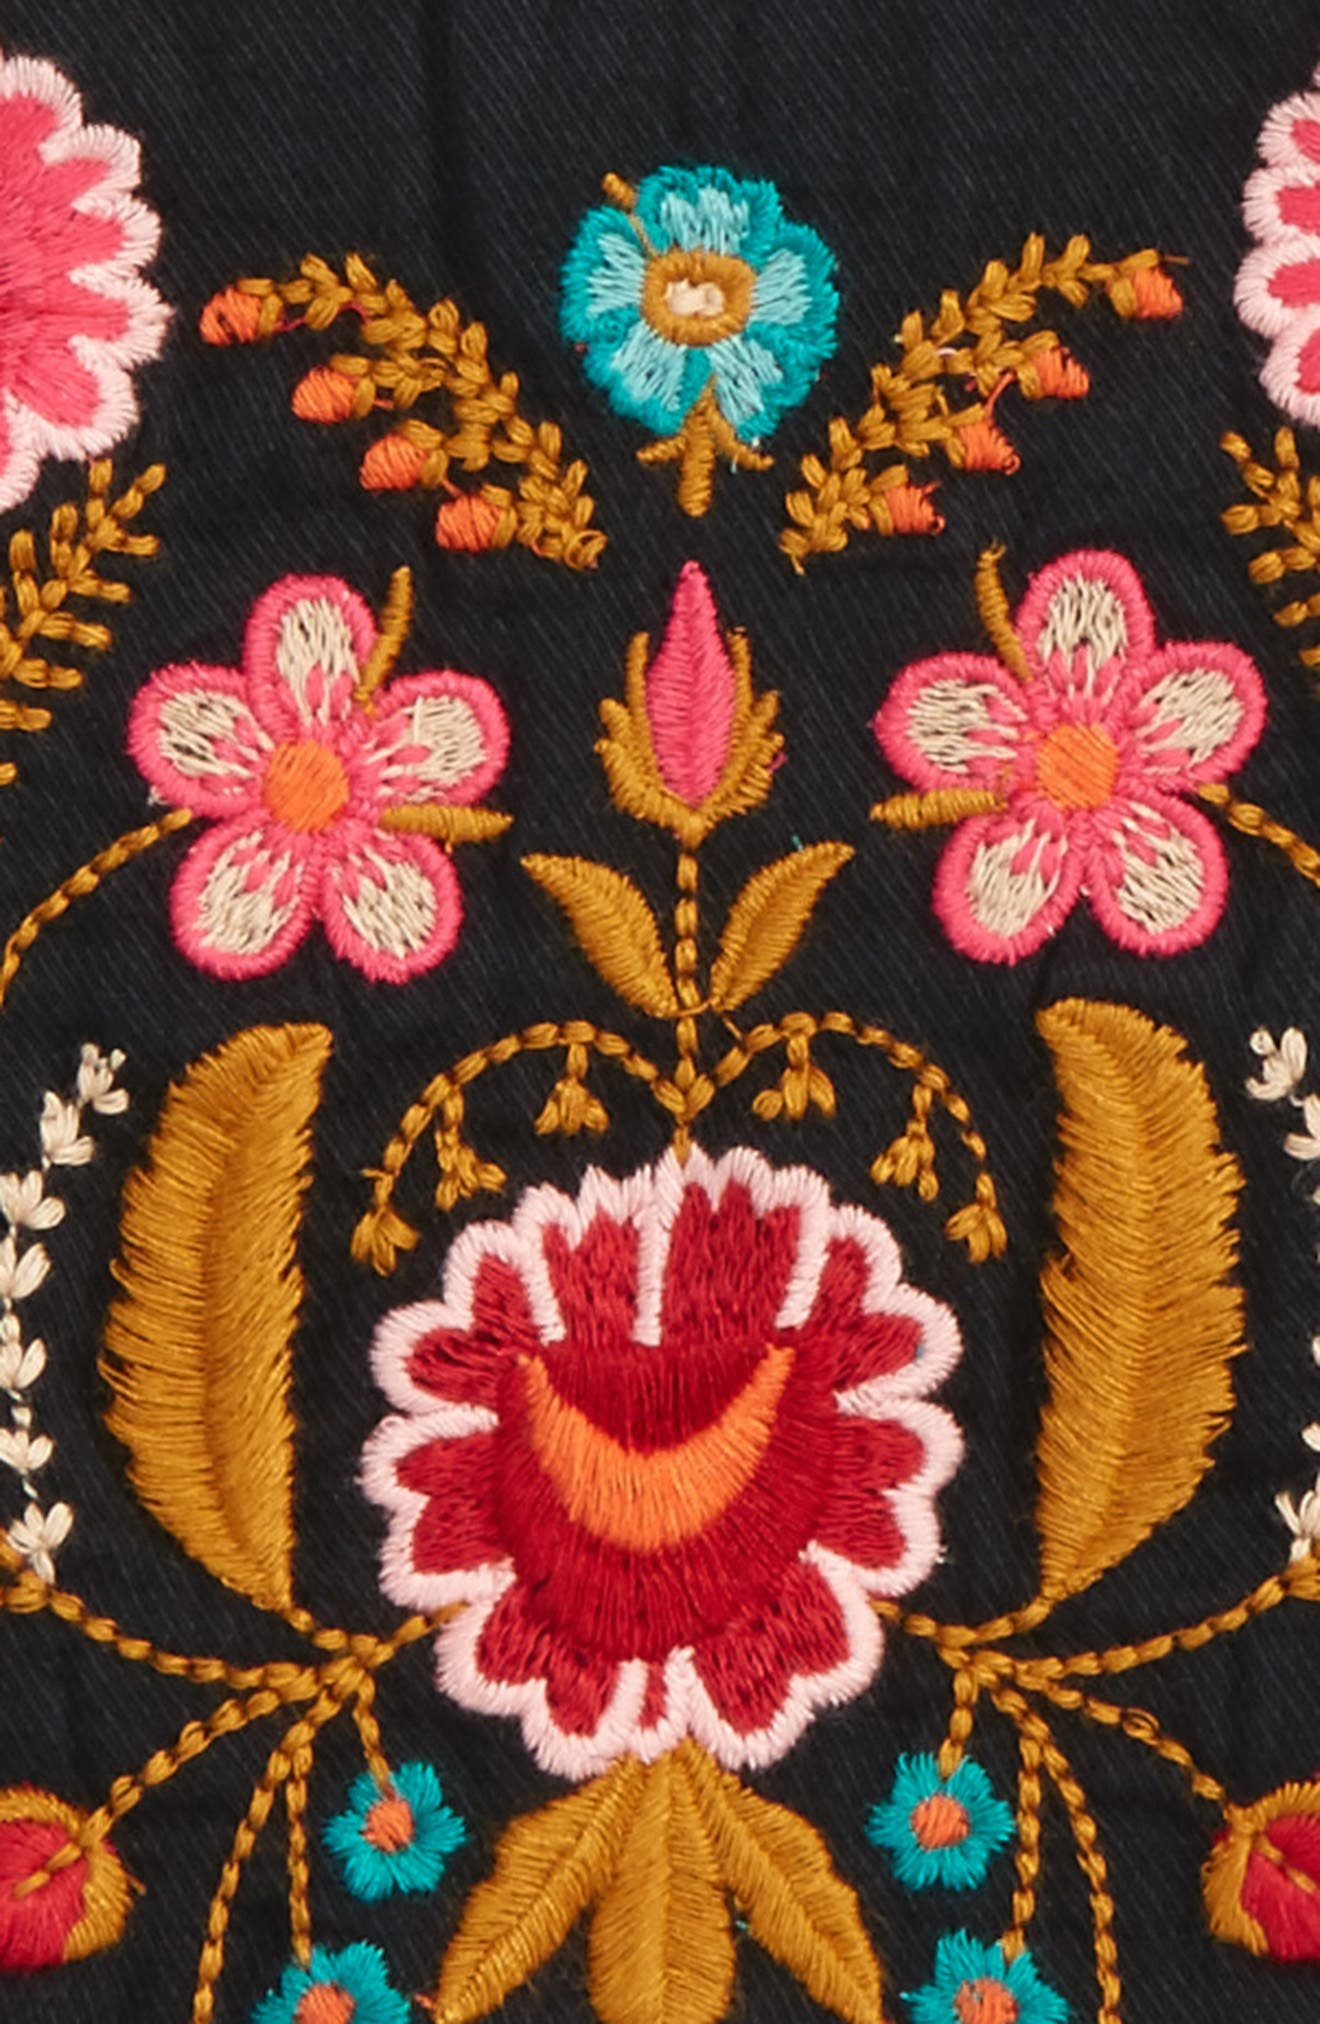 Emma Embroidered Twill Tunic,                             Alternate thumbnail 3, color,                             001